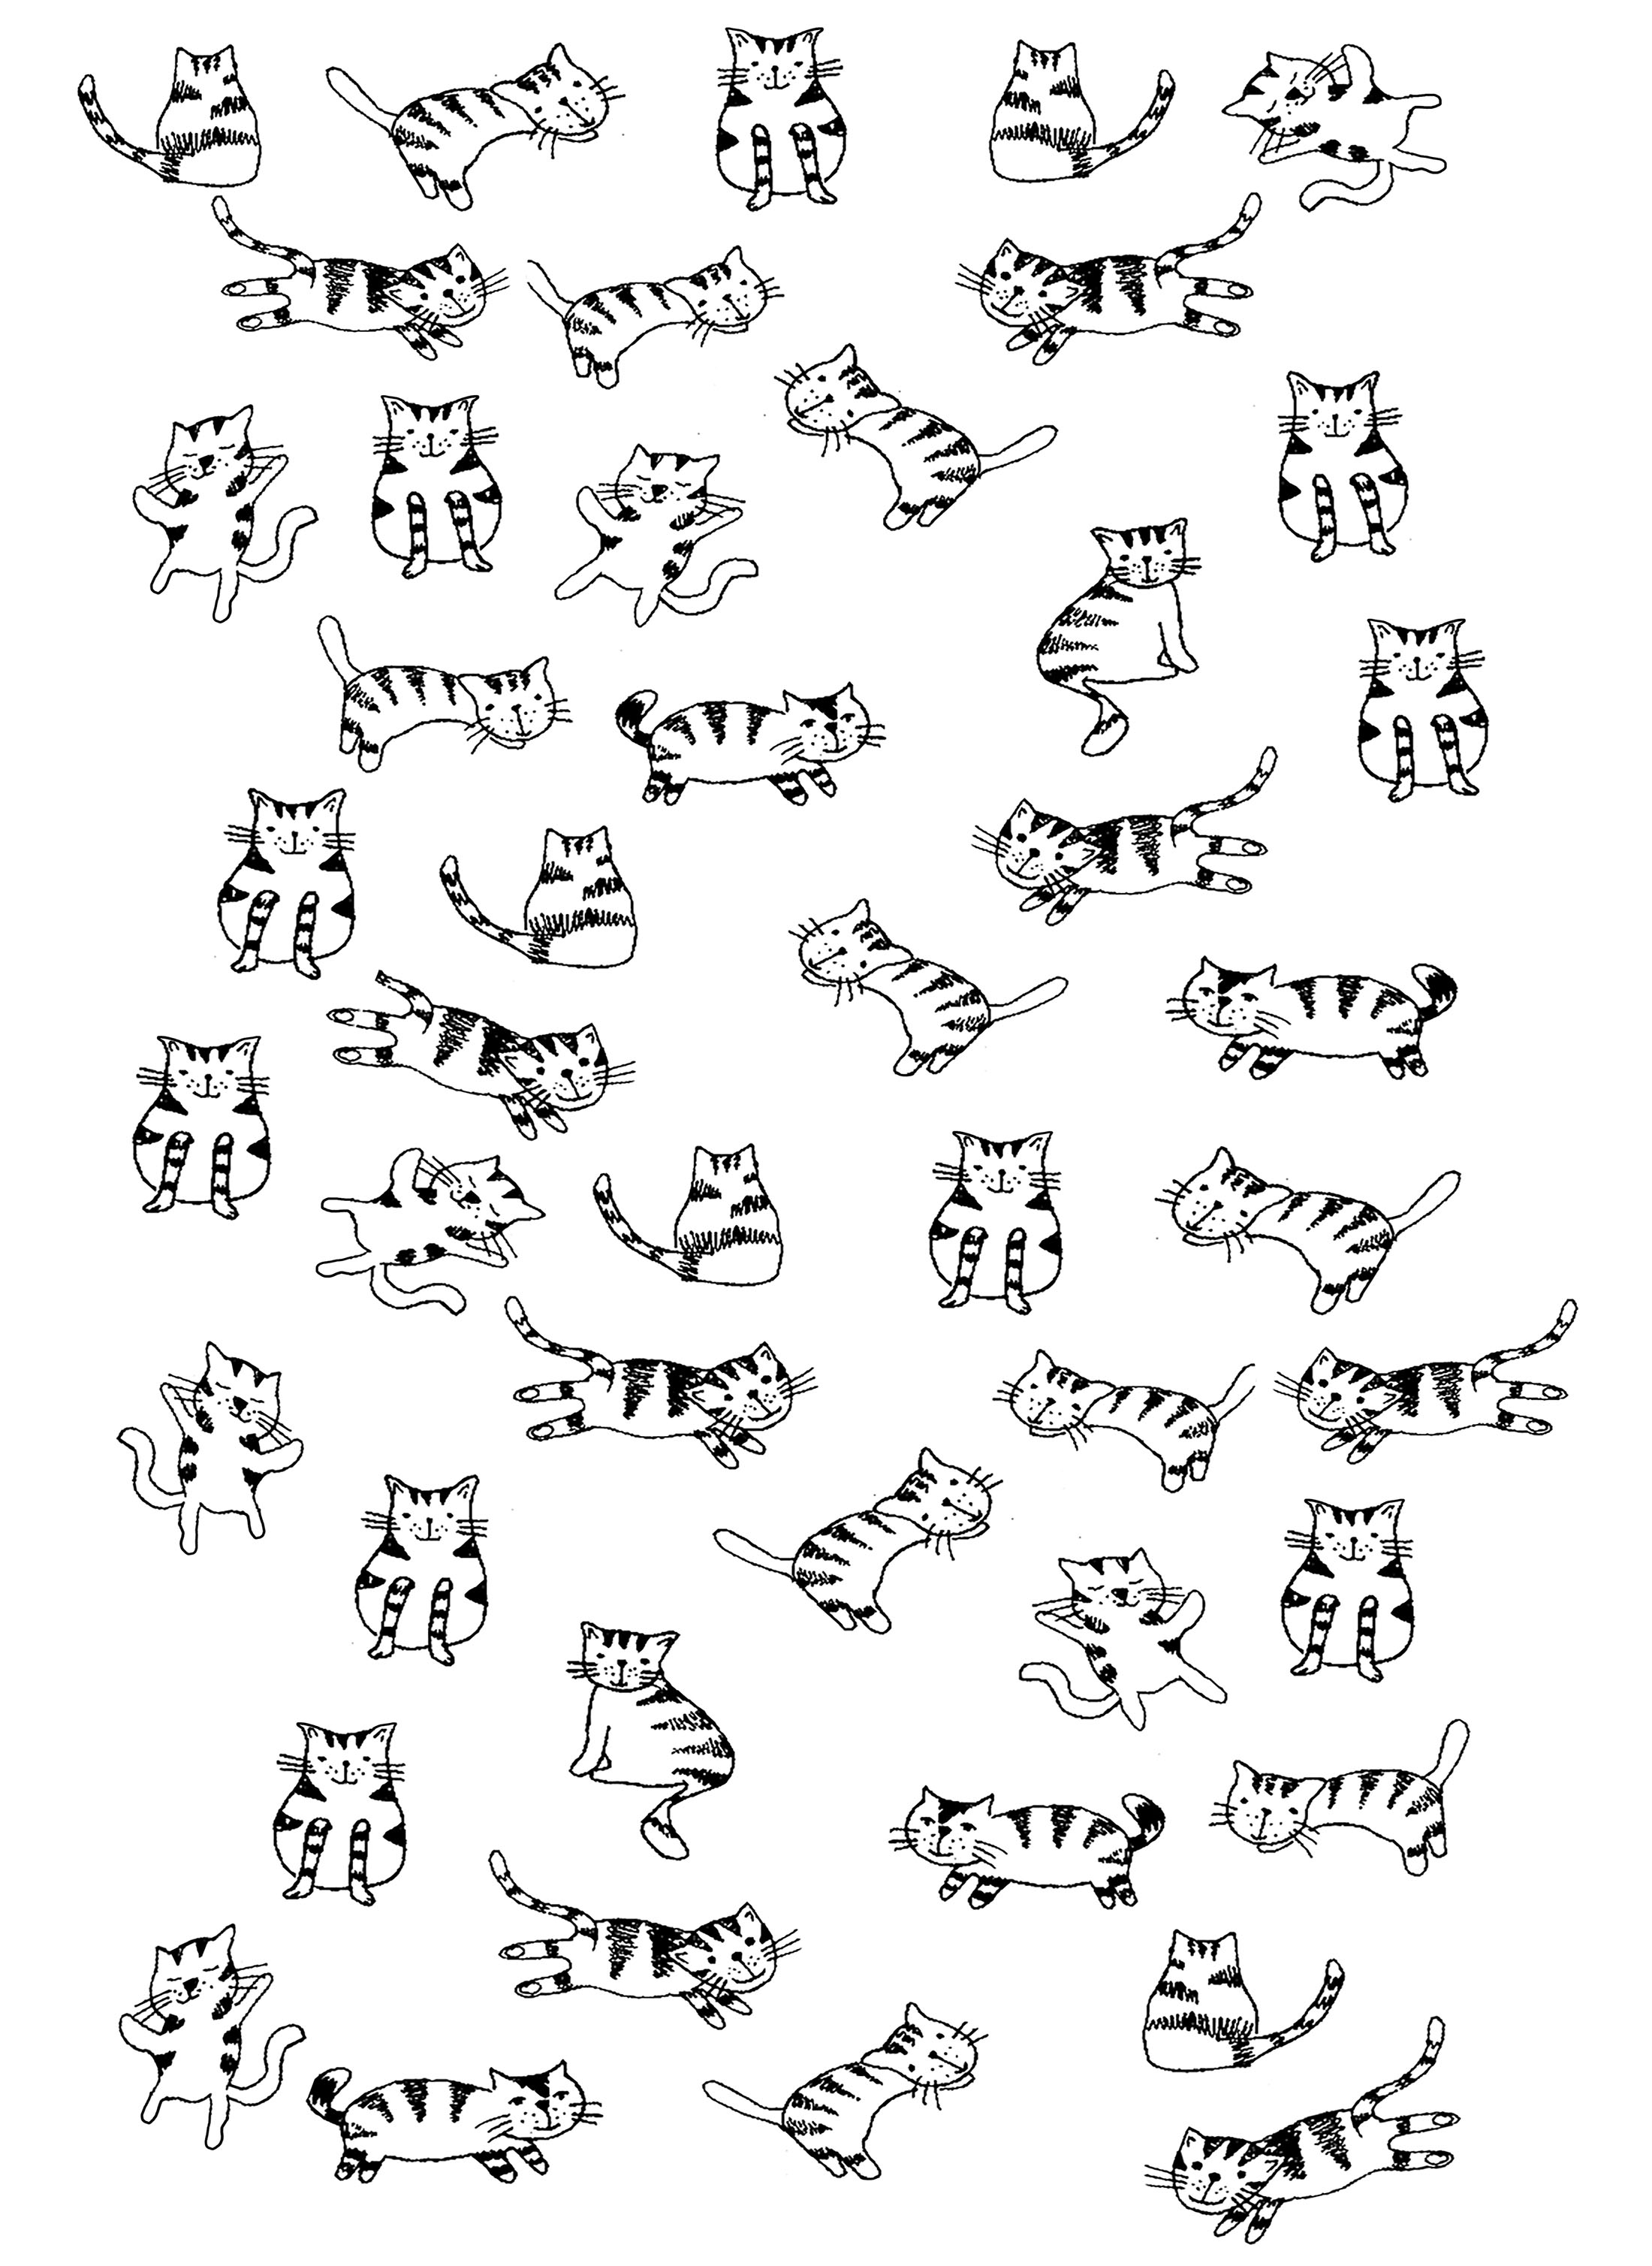 Petits chats animaux coloriages difficiles pour adultes justcolor - Chat a colorier adulte ...